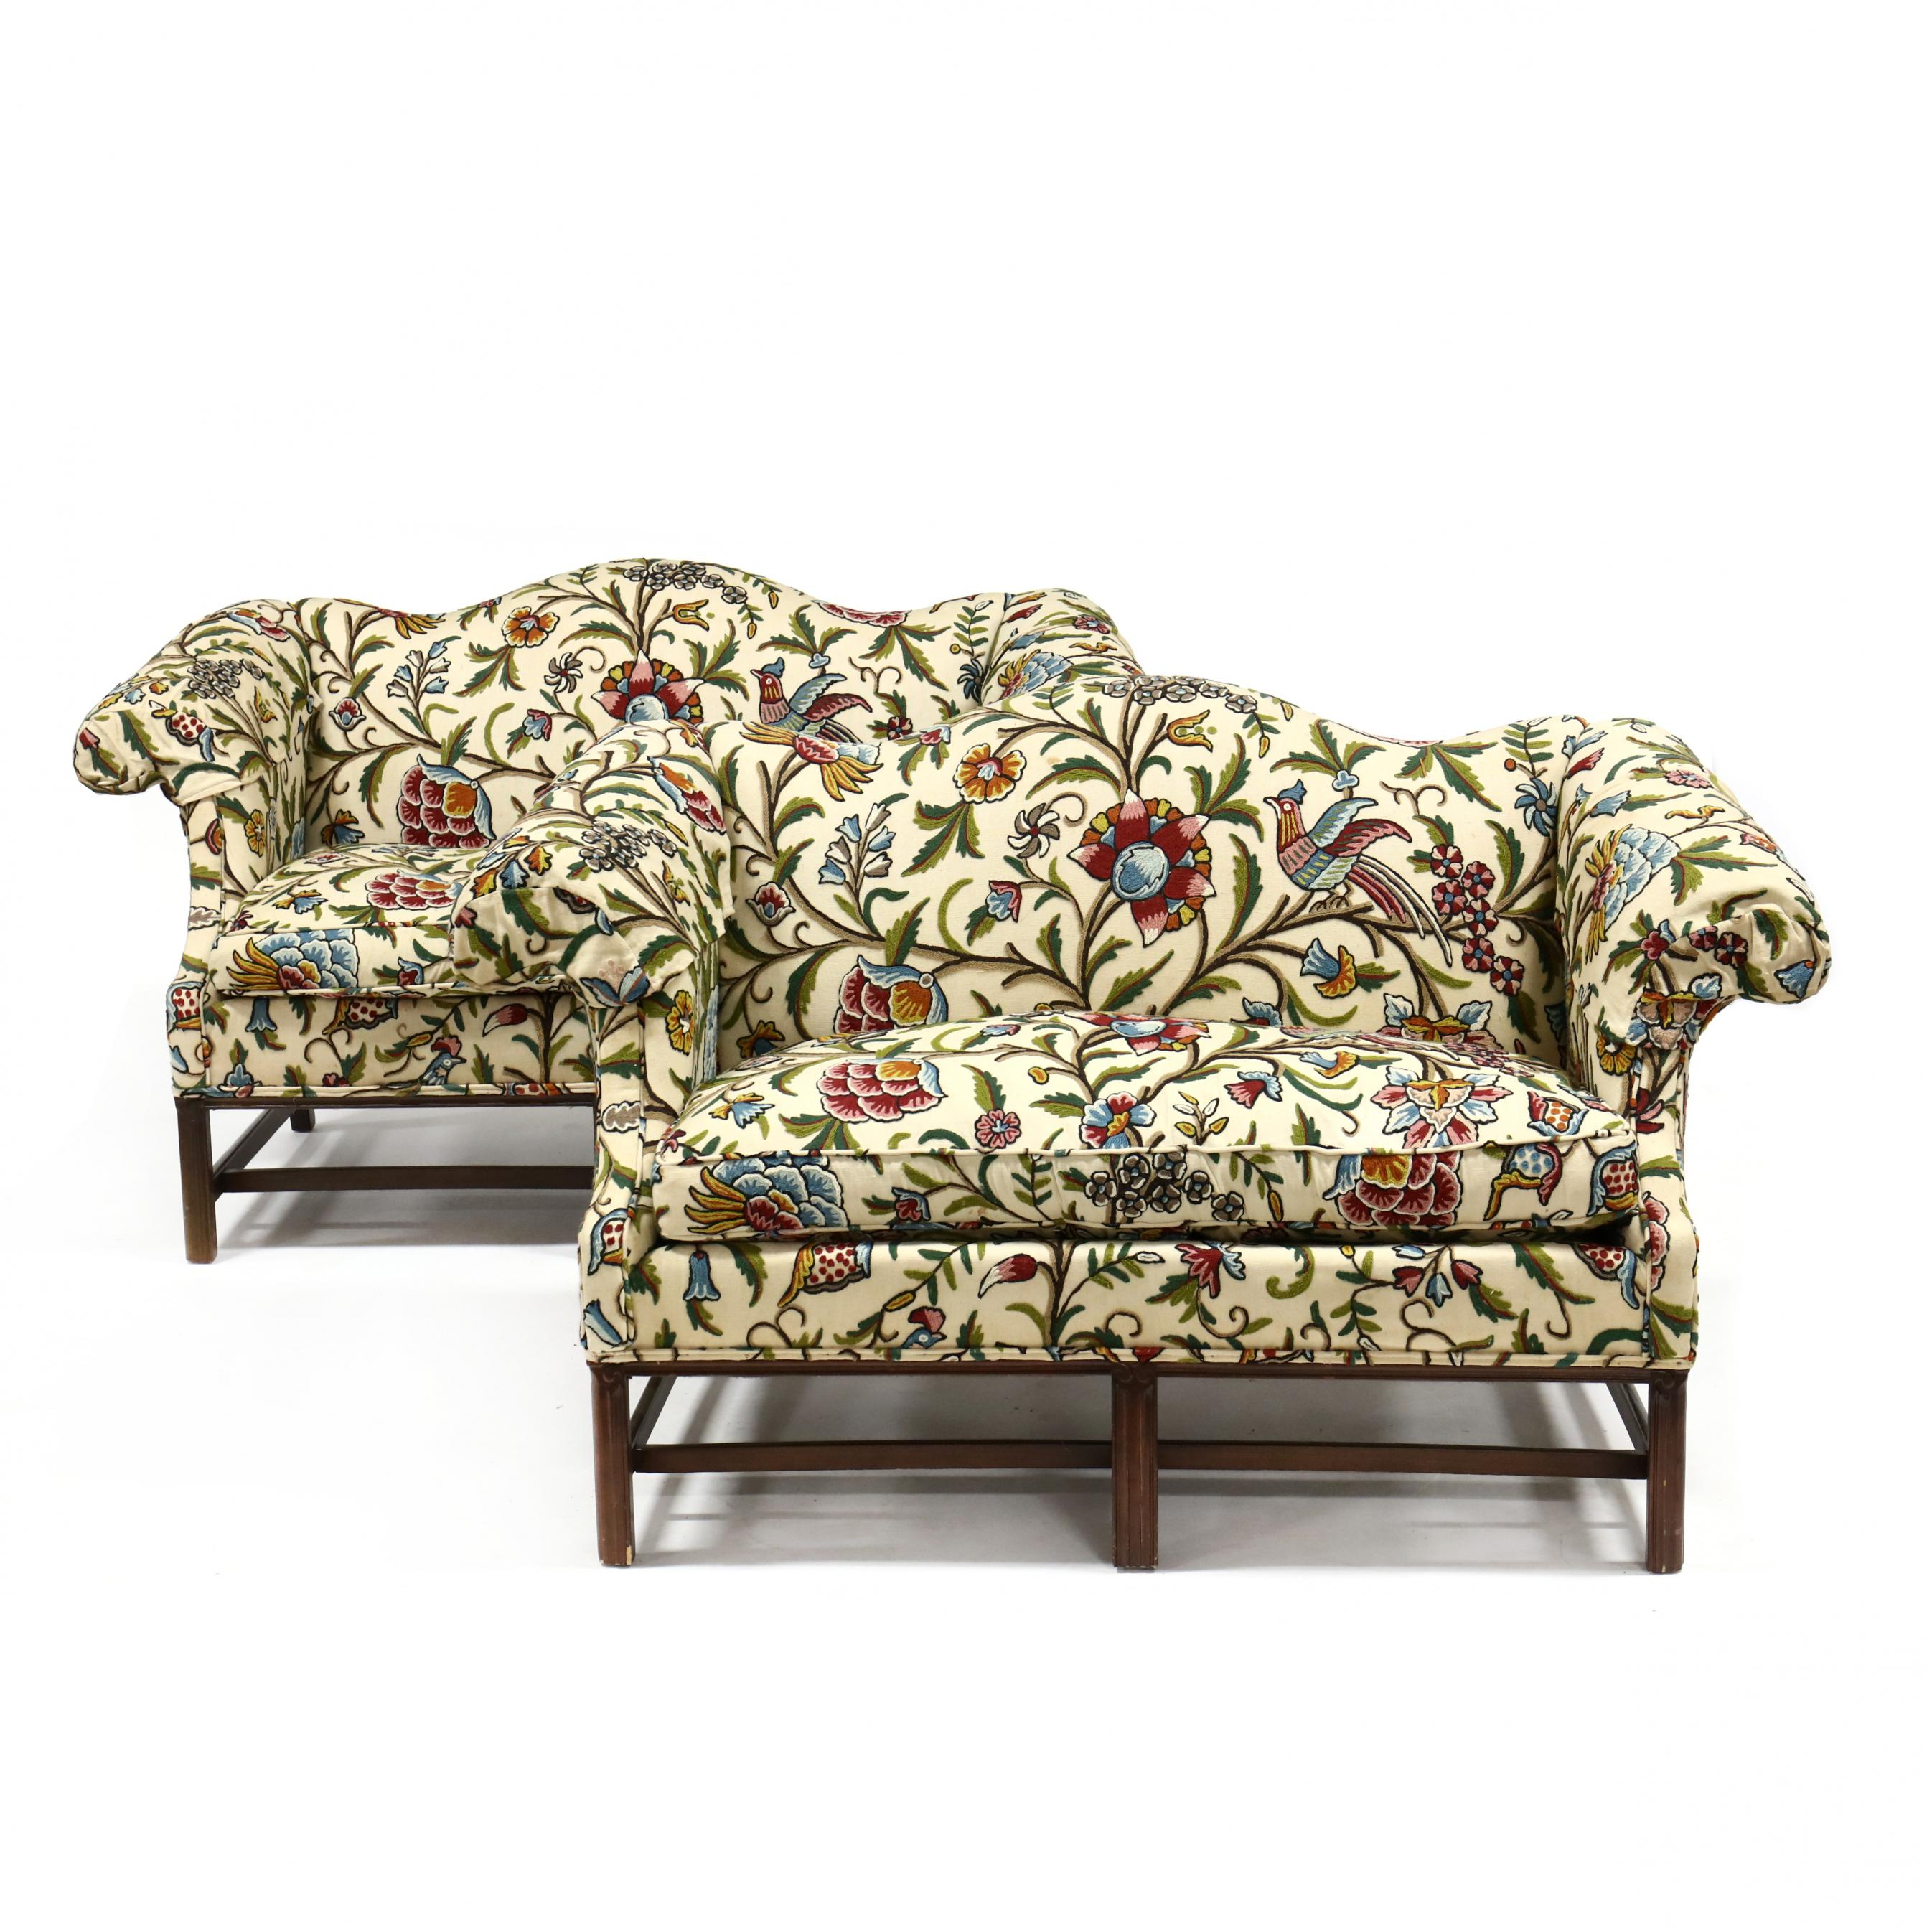 pair-of-chippendale-style-crewelwork-upholstered-sofas